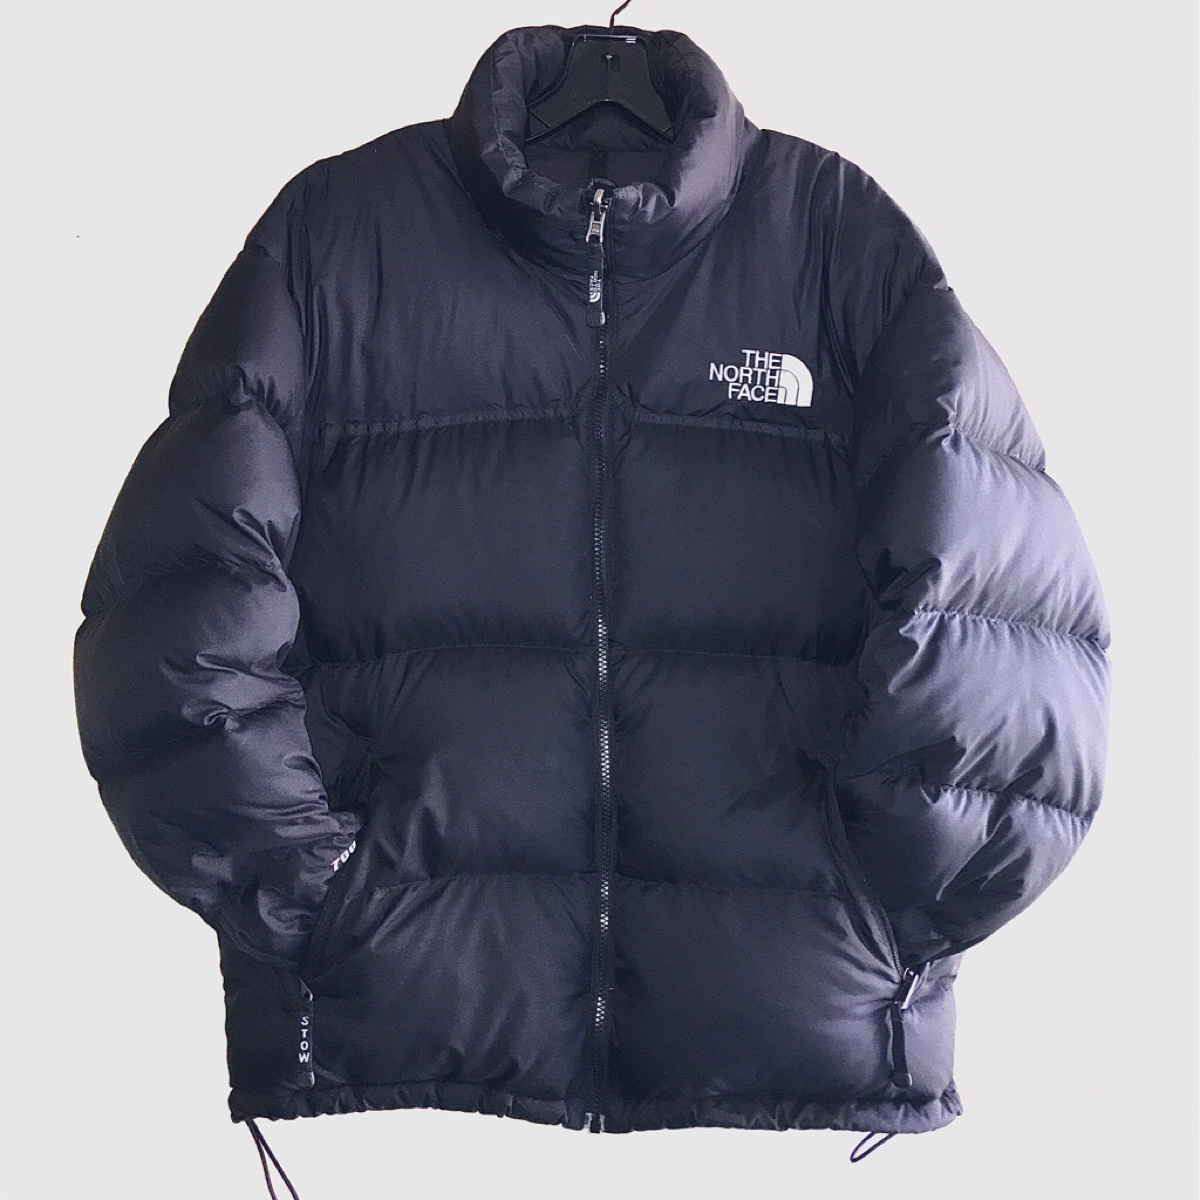 The North Face 700 Nuptse Vintage 90s Puffer: XL